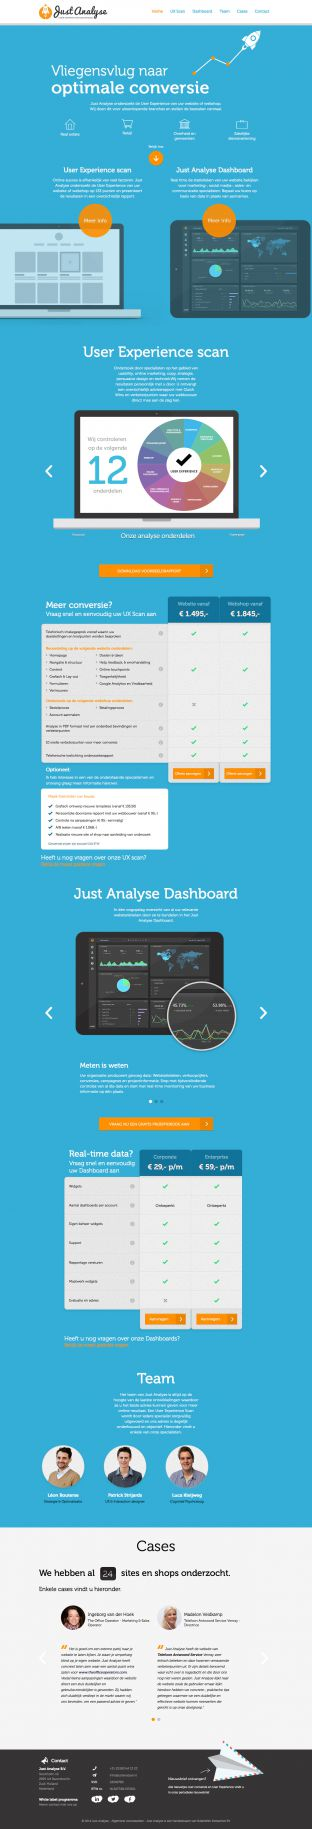 User Experience Scan voor webshops en websites I Real time data dashboard - Just Analyse UX Experts